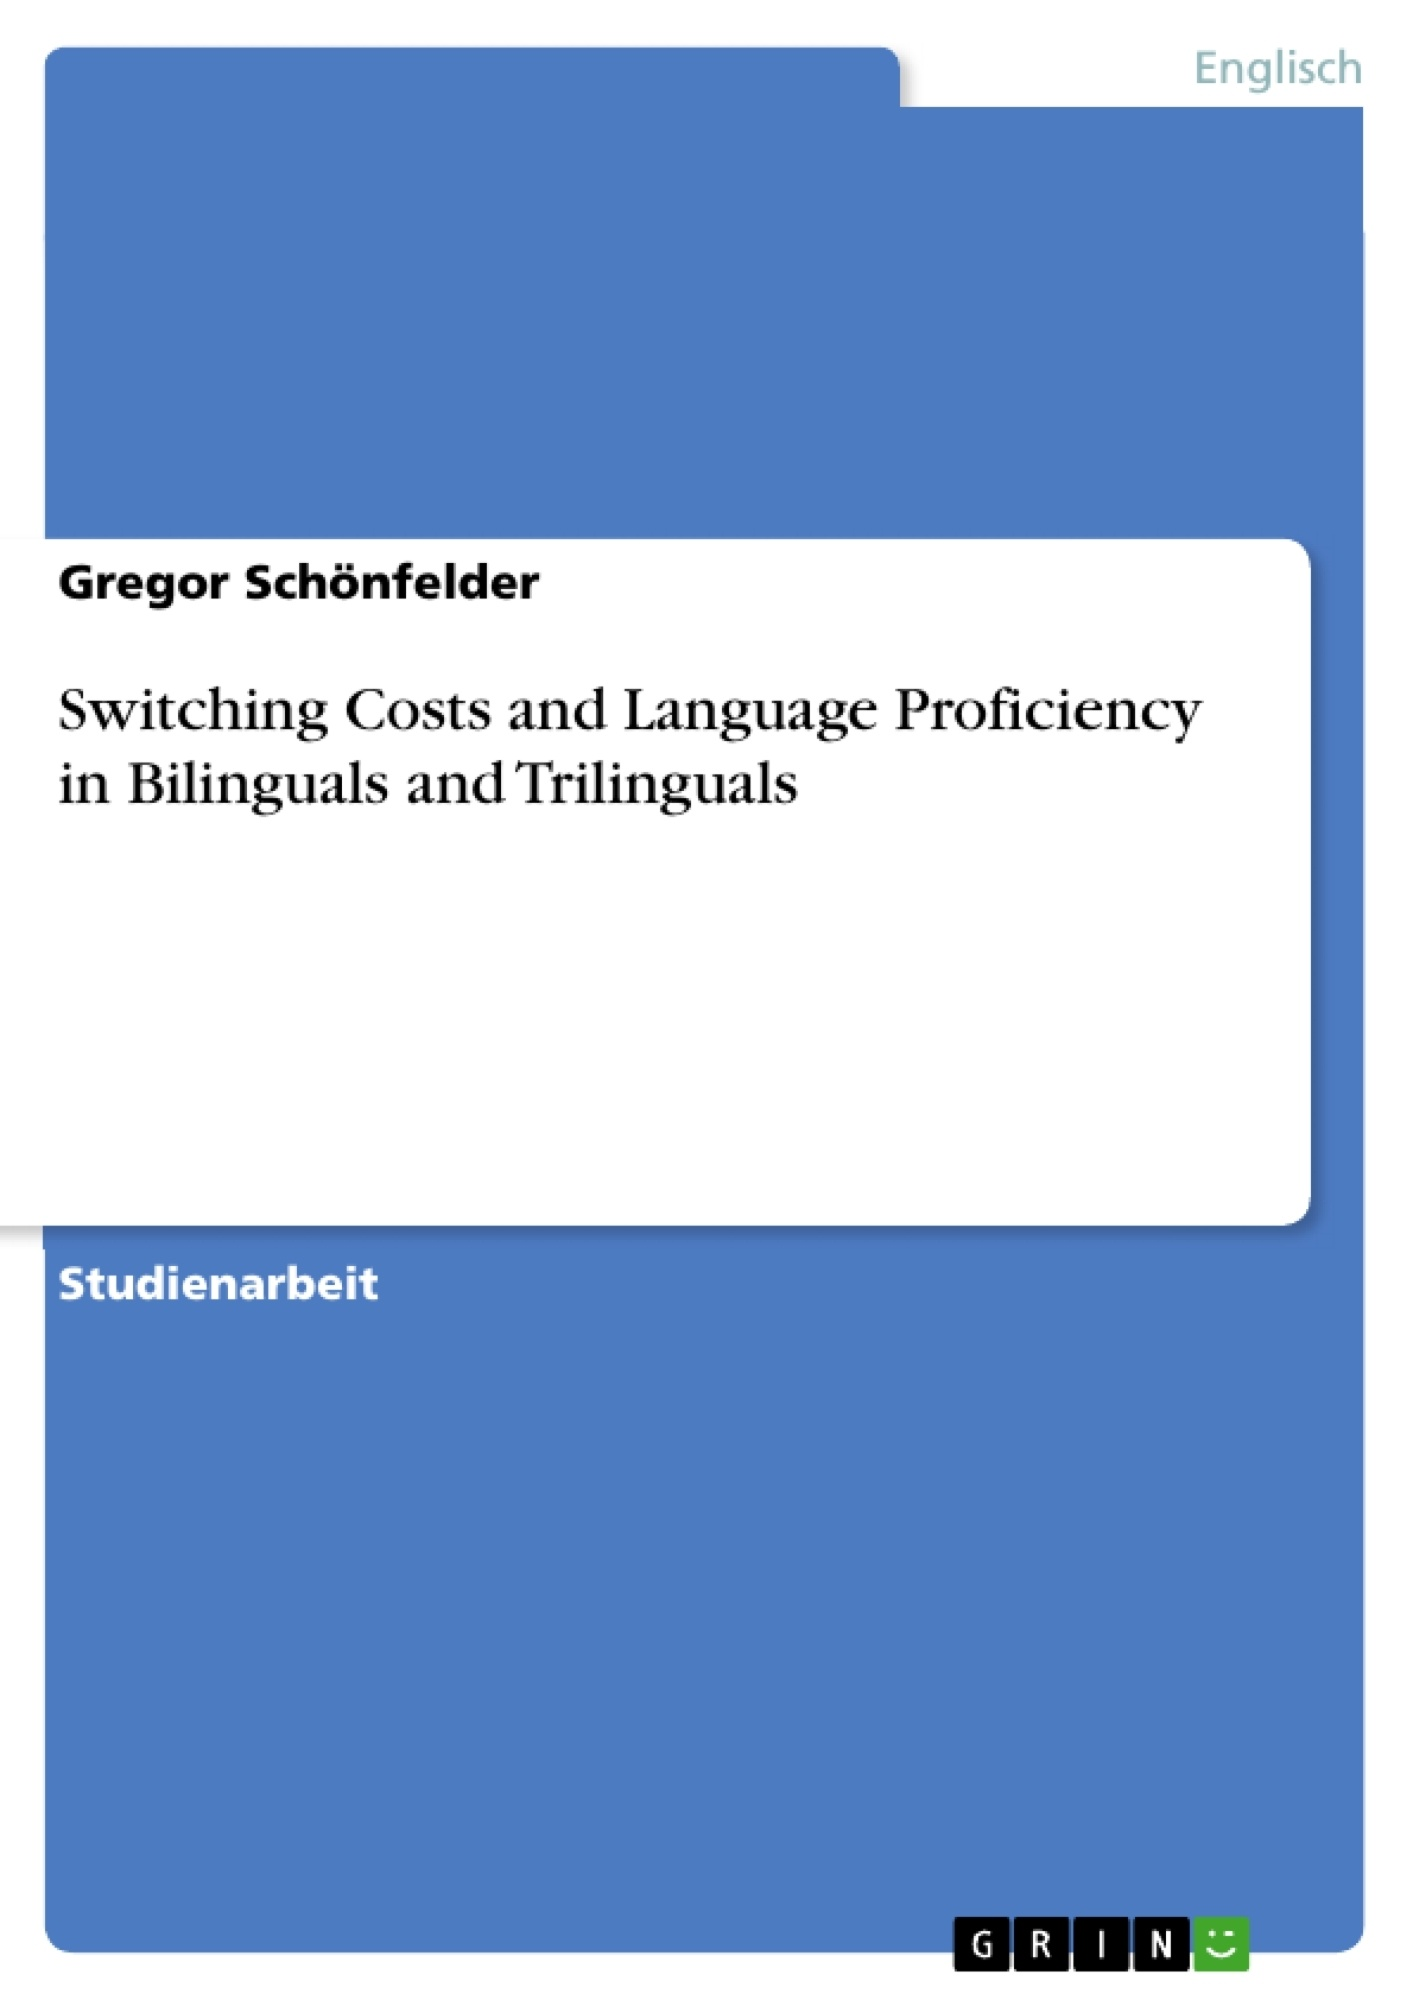 Titel: Switching Costs and Language Proficiency in Bilinguals and Trilinguals